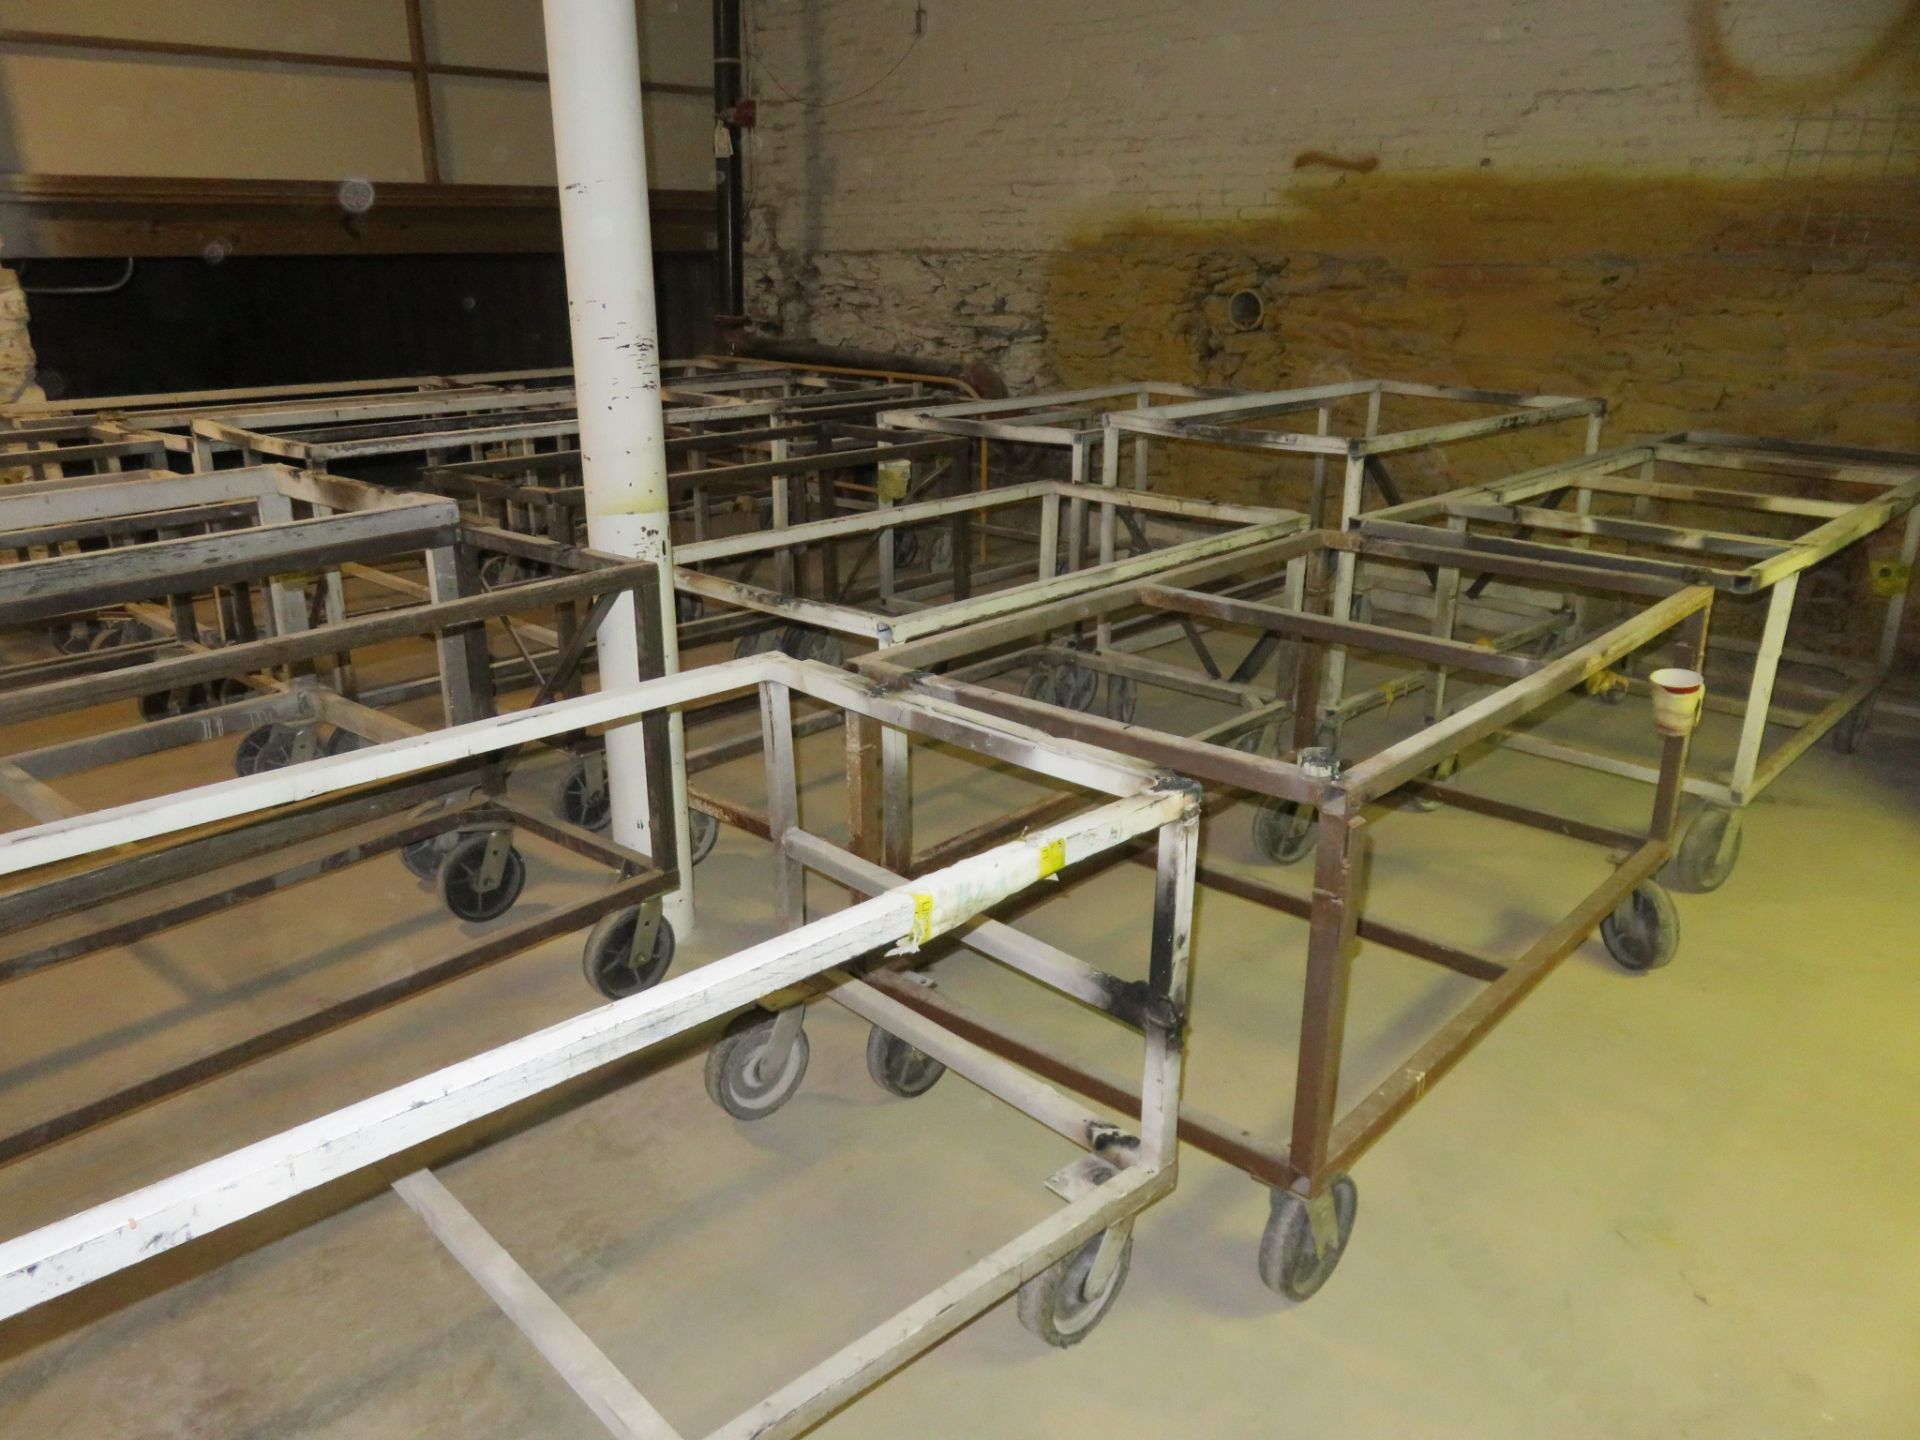 """Heavy Duty Rolling Carts Lot of 19 approx. 64""""x 36""""x 34"""" - Image 2 of 4"""